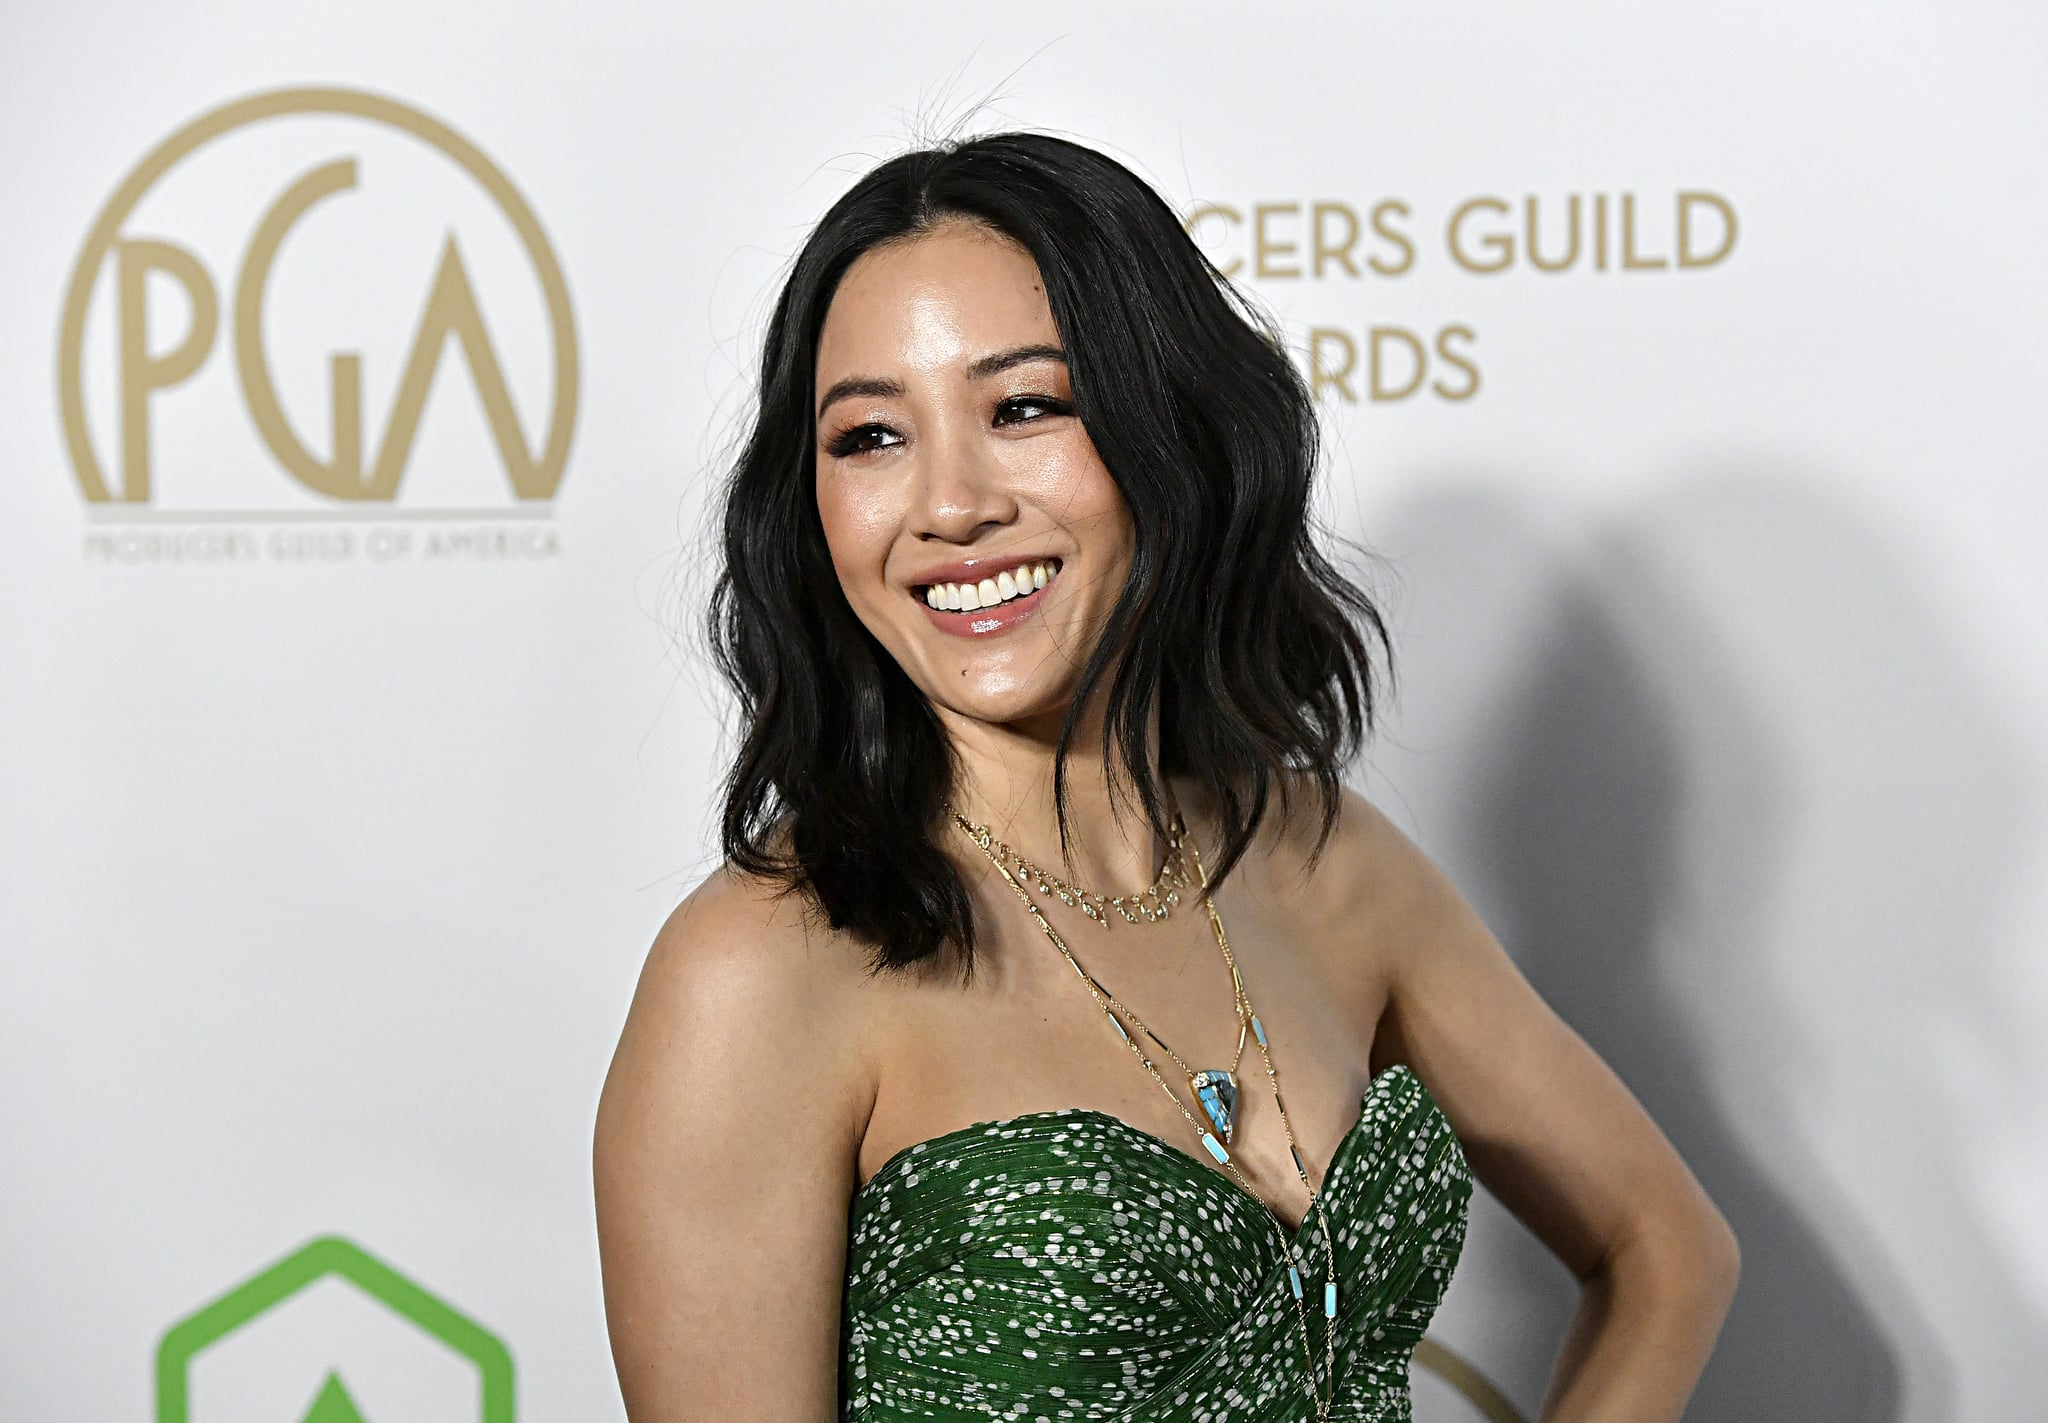 LOS ANGELES, CALIFORNIA - JANUARY 18: Constance Wu attends the 31st Annual Producers Guild Awards at Hollywood Palladium on January 18, 2020 in Los Angeles, California. (Photo by Frazer Harrison/Getty Images)